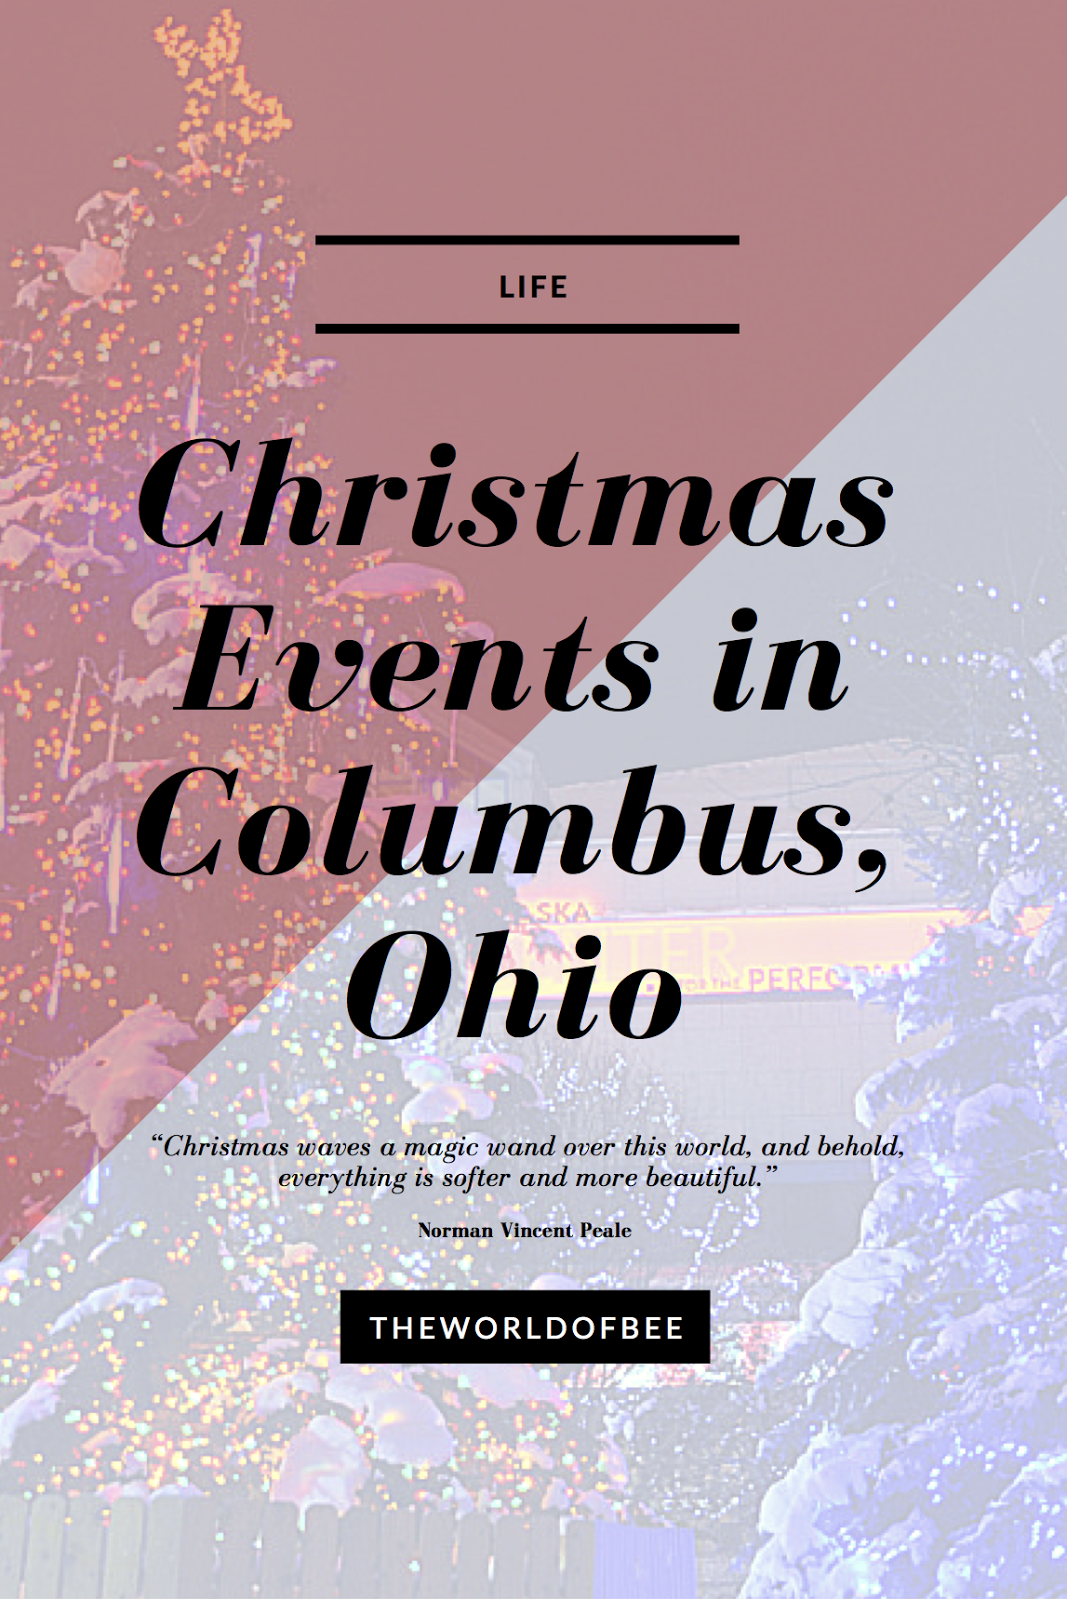 5 Christmas Events You Can't Miss